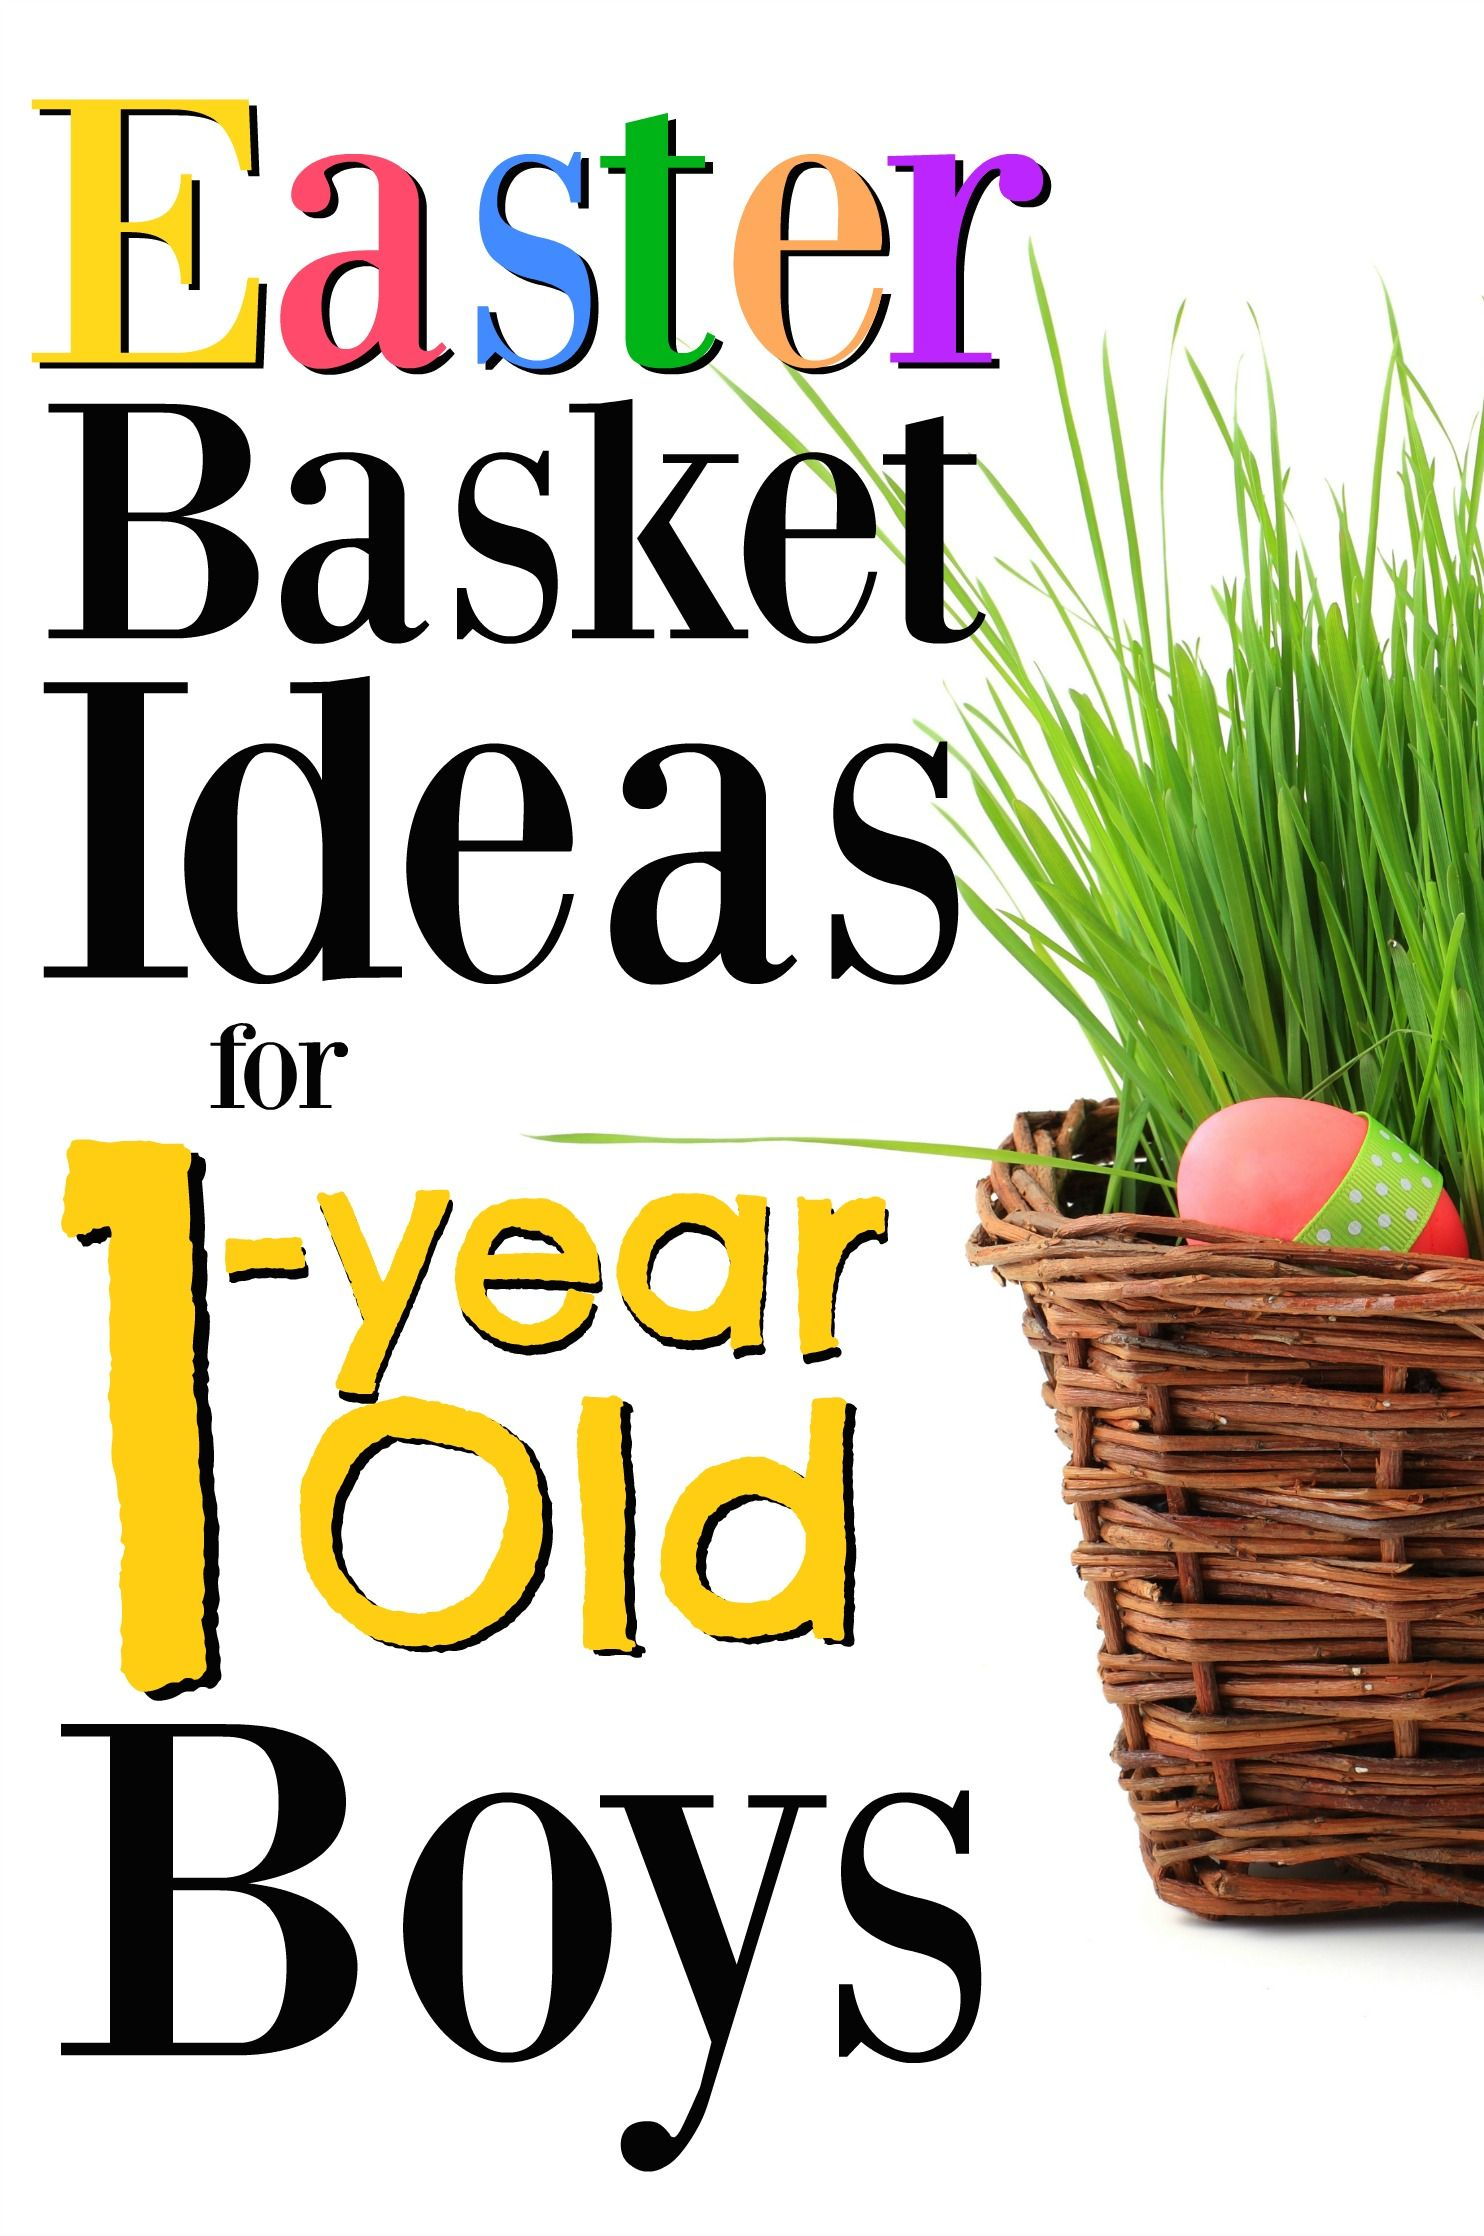 Easter basket ideas for 1 year old boys easter baskets easter easter basket ideas for 1 year old boys negle Choice Image